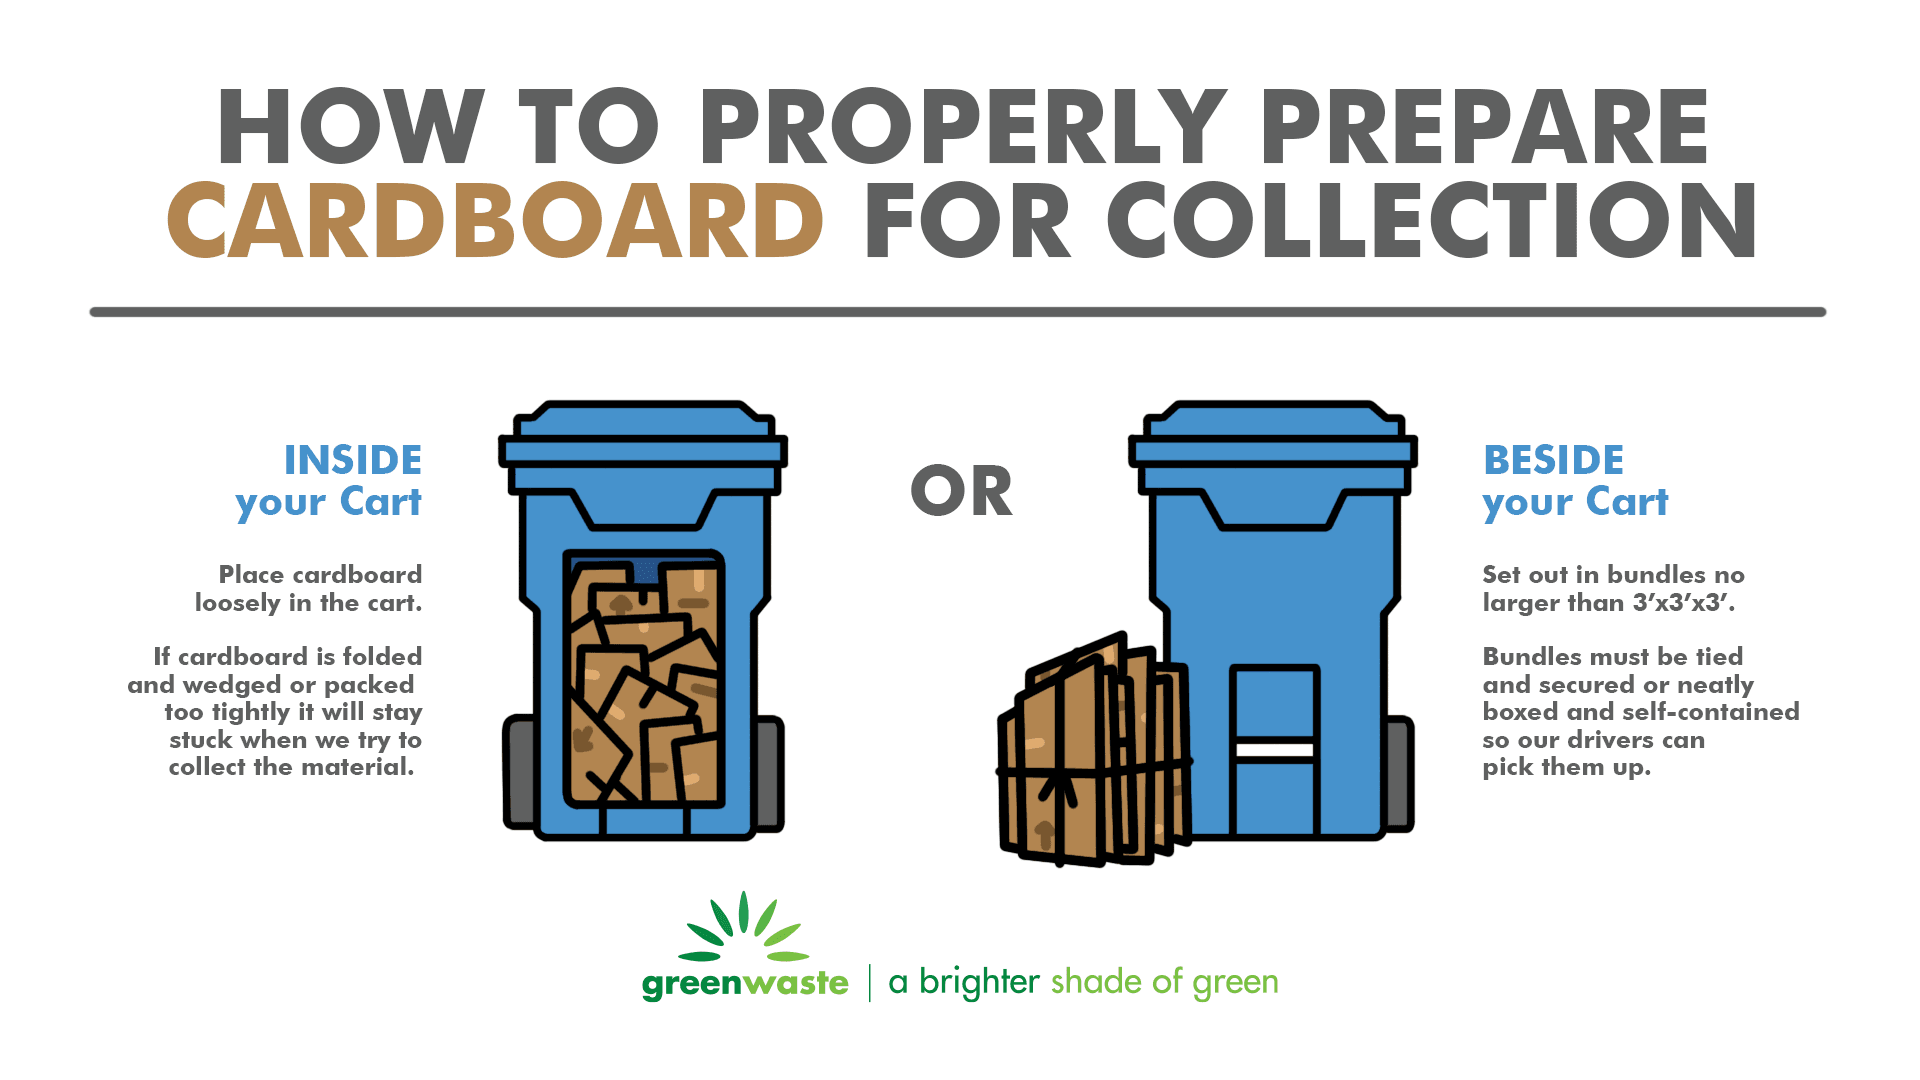 How to Property Prepare Cardboard for Collection